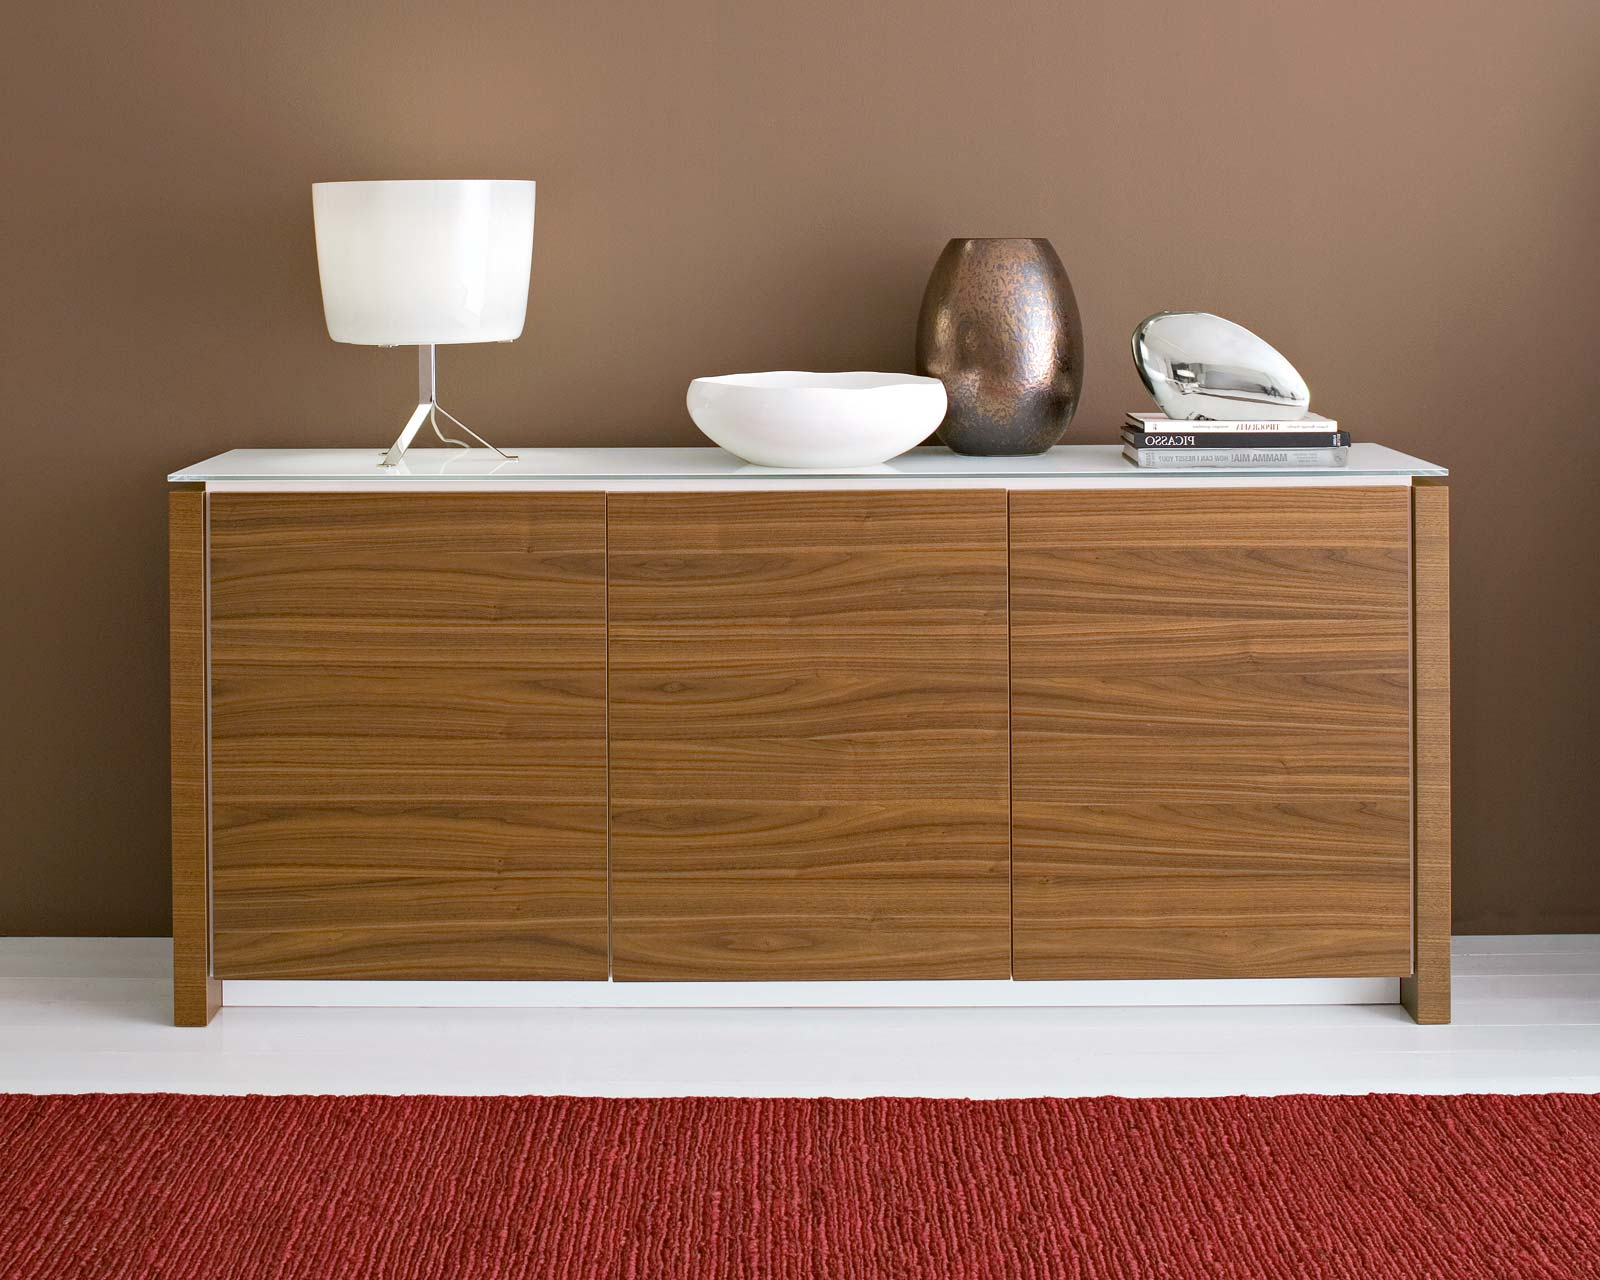 Famous Walnut Finish Contempo Sideboards Regarding Cool Sideboard Decorating With Reclaimed Wood Material And White (View 5 of 20)